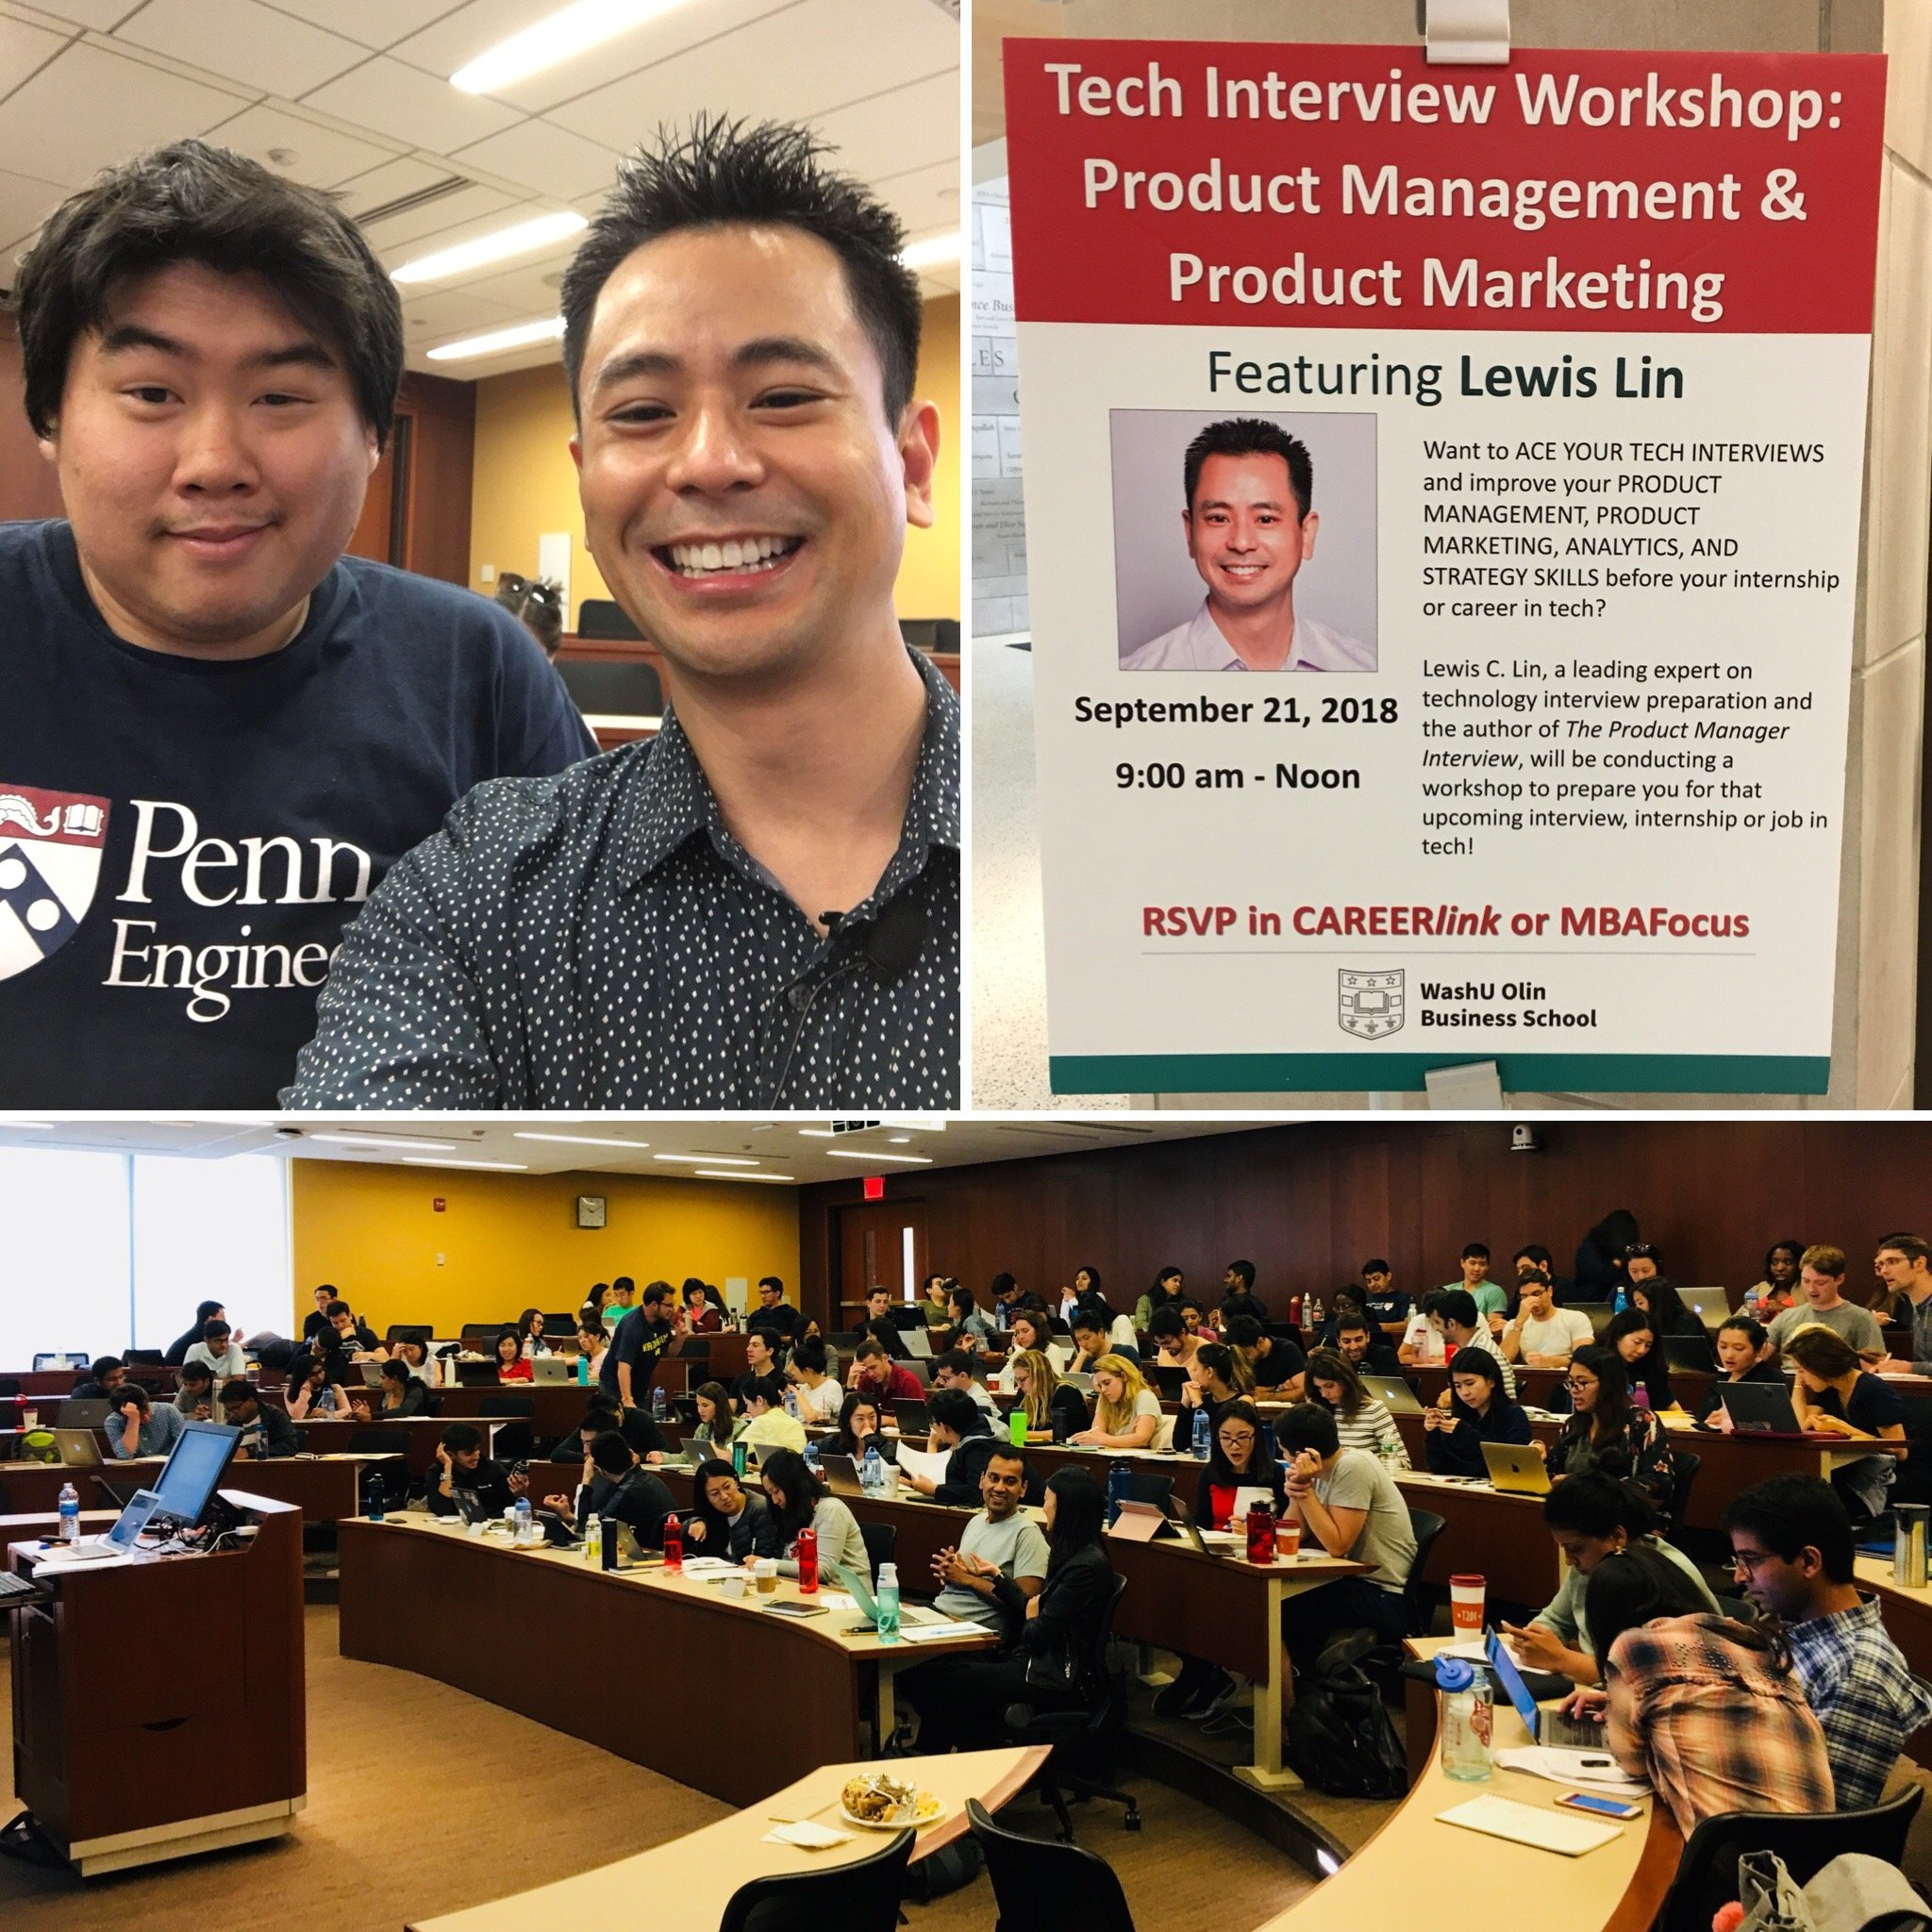 lewis-c-lin-workshop-wharton-washington-university.jpg